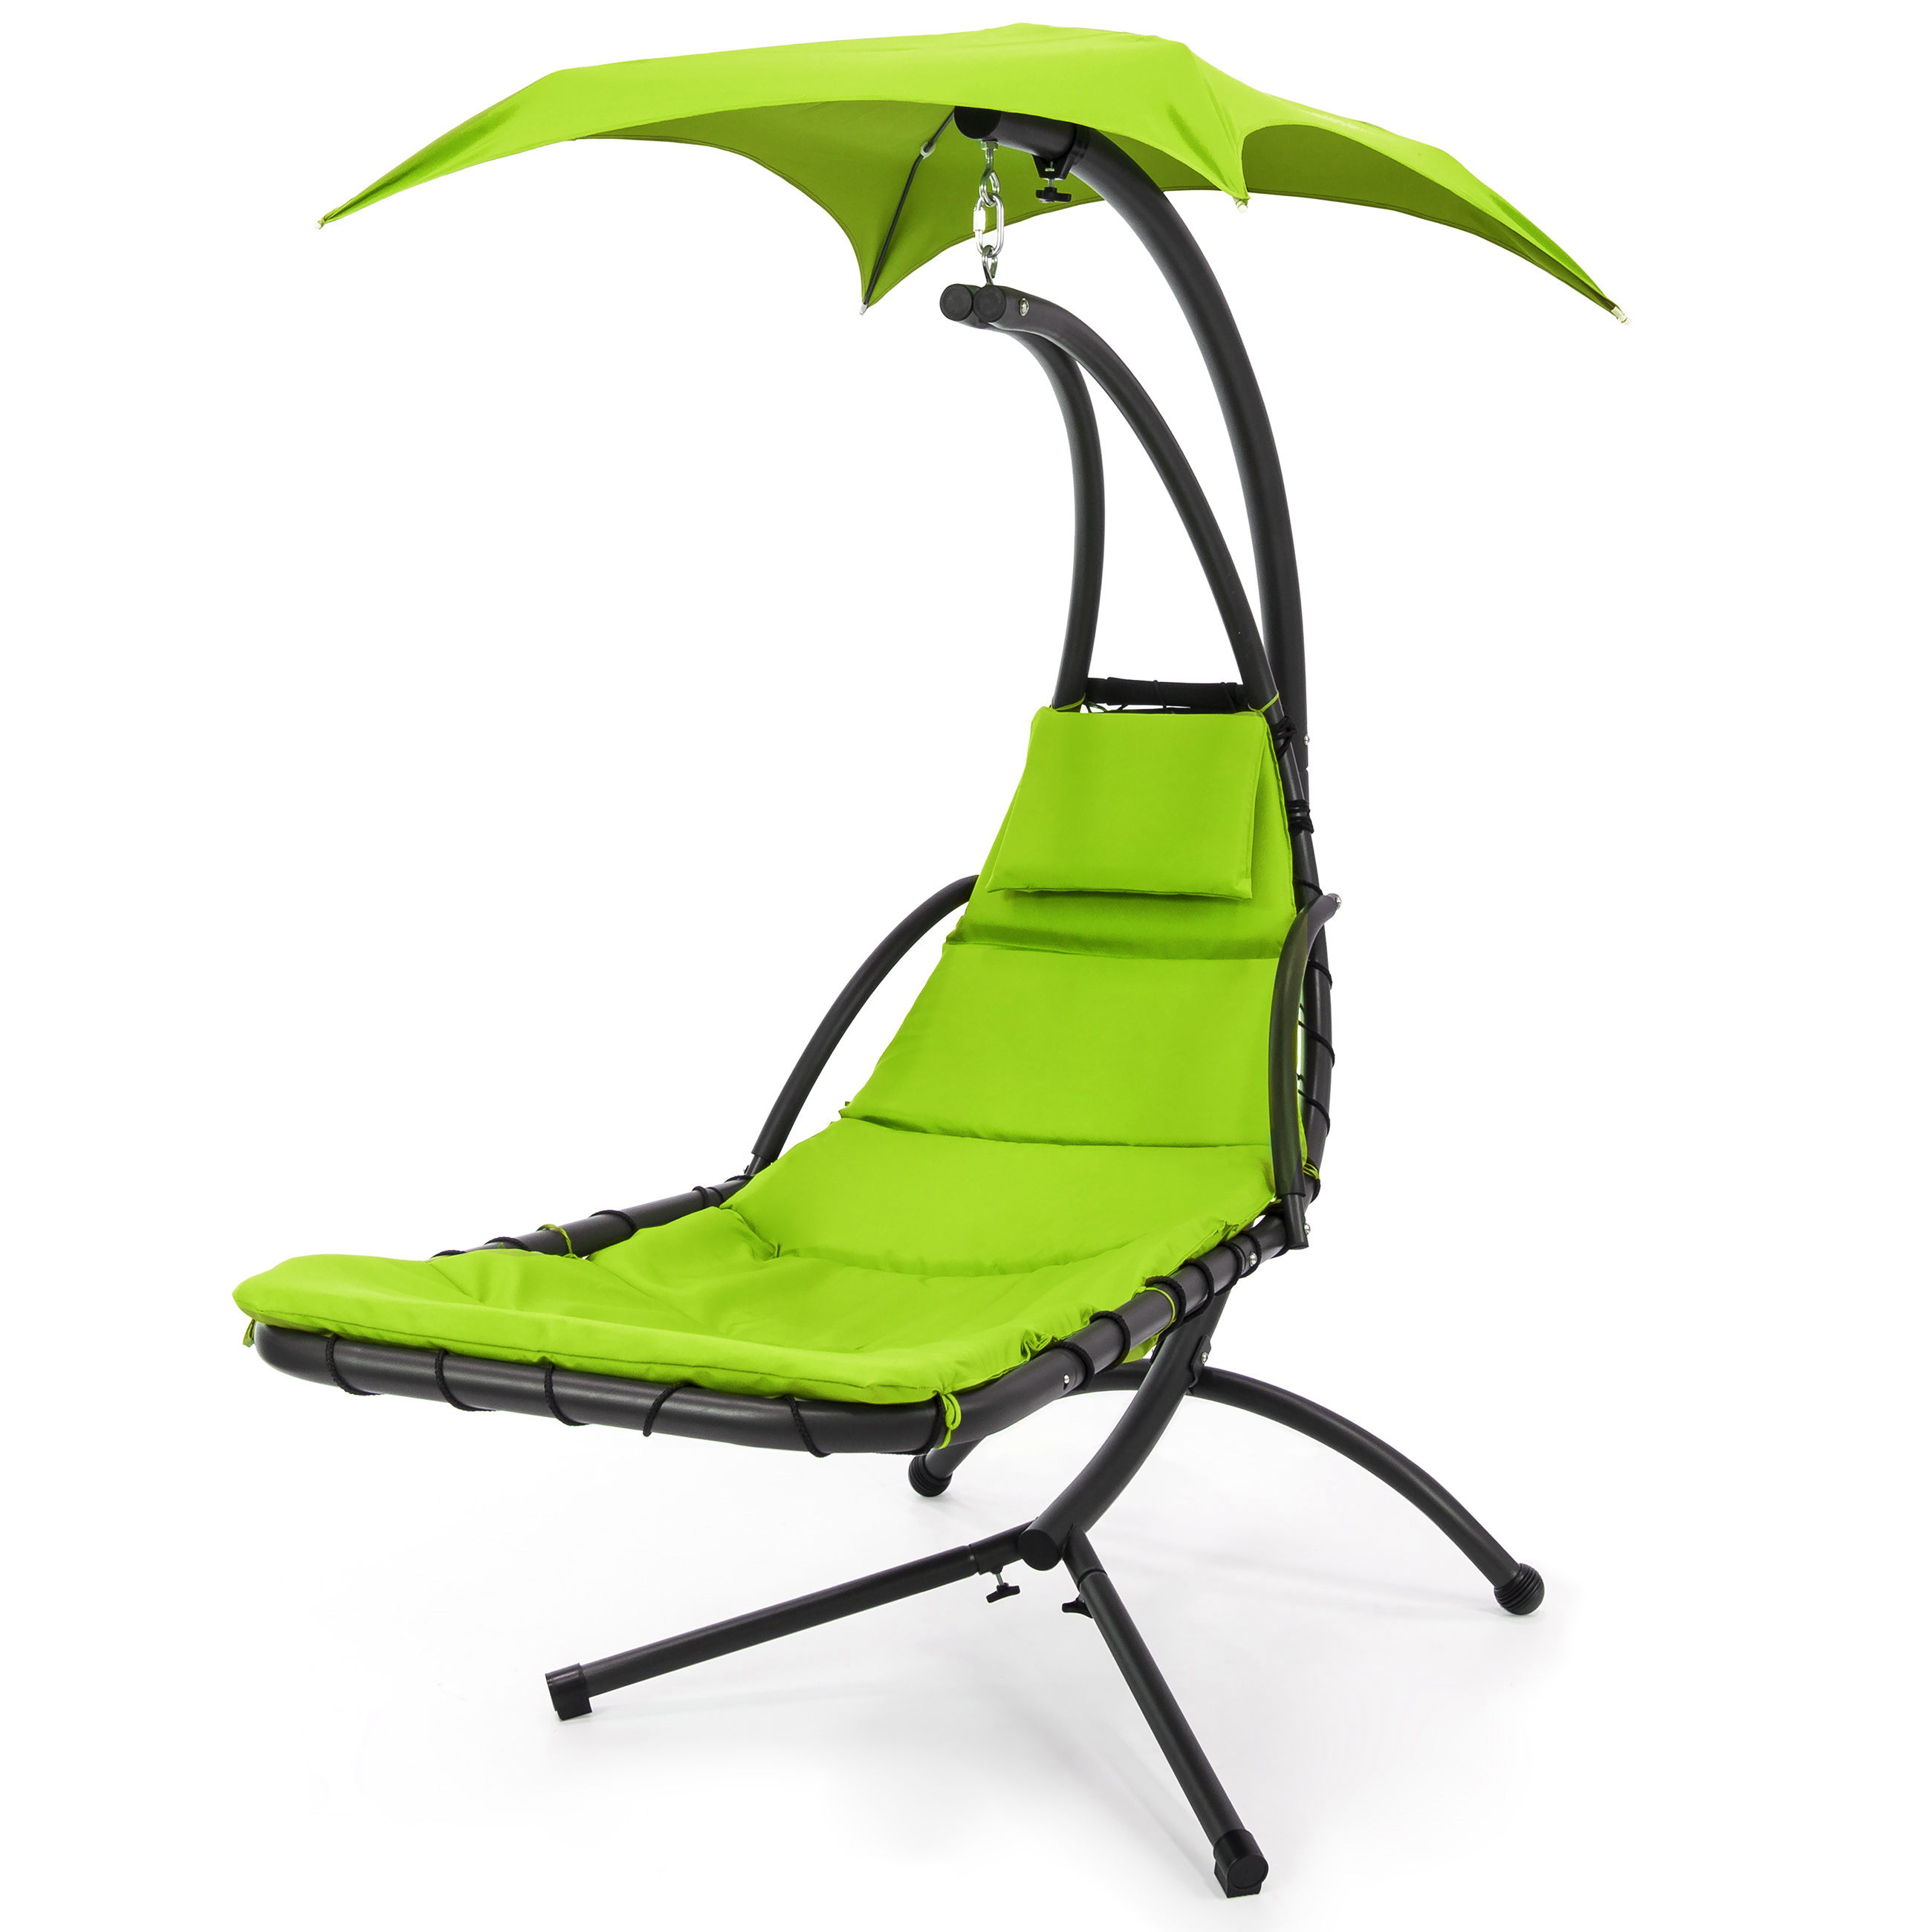 Best Choice Products Hanging Chaise Lounger Chair Arc Stand Air Porch Swing  Hammock Chair Canopy (Orange)   Walmart.com